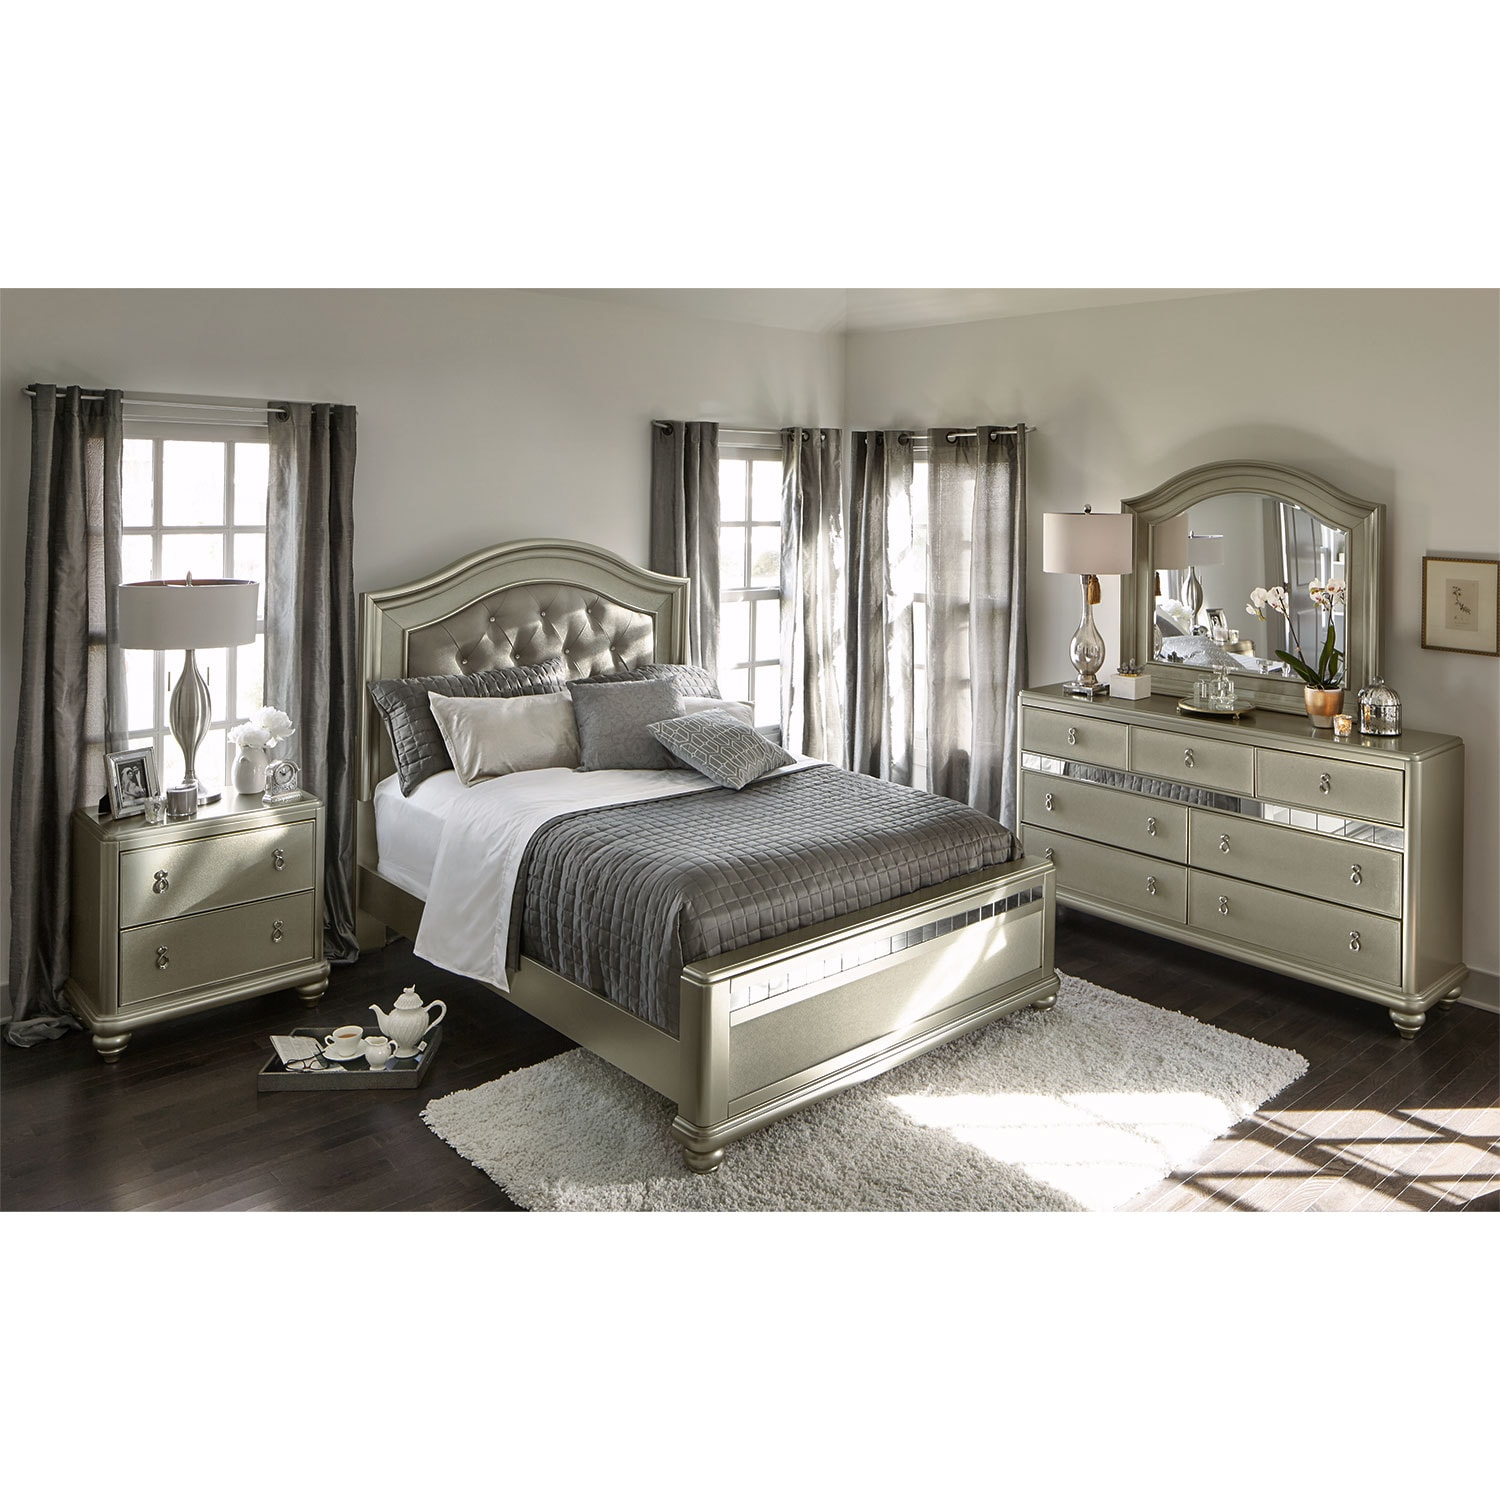 Serena Queen 6-Piece Bedroom Set - Platinum | Value City Furniture ...